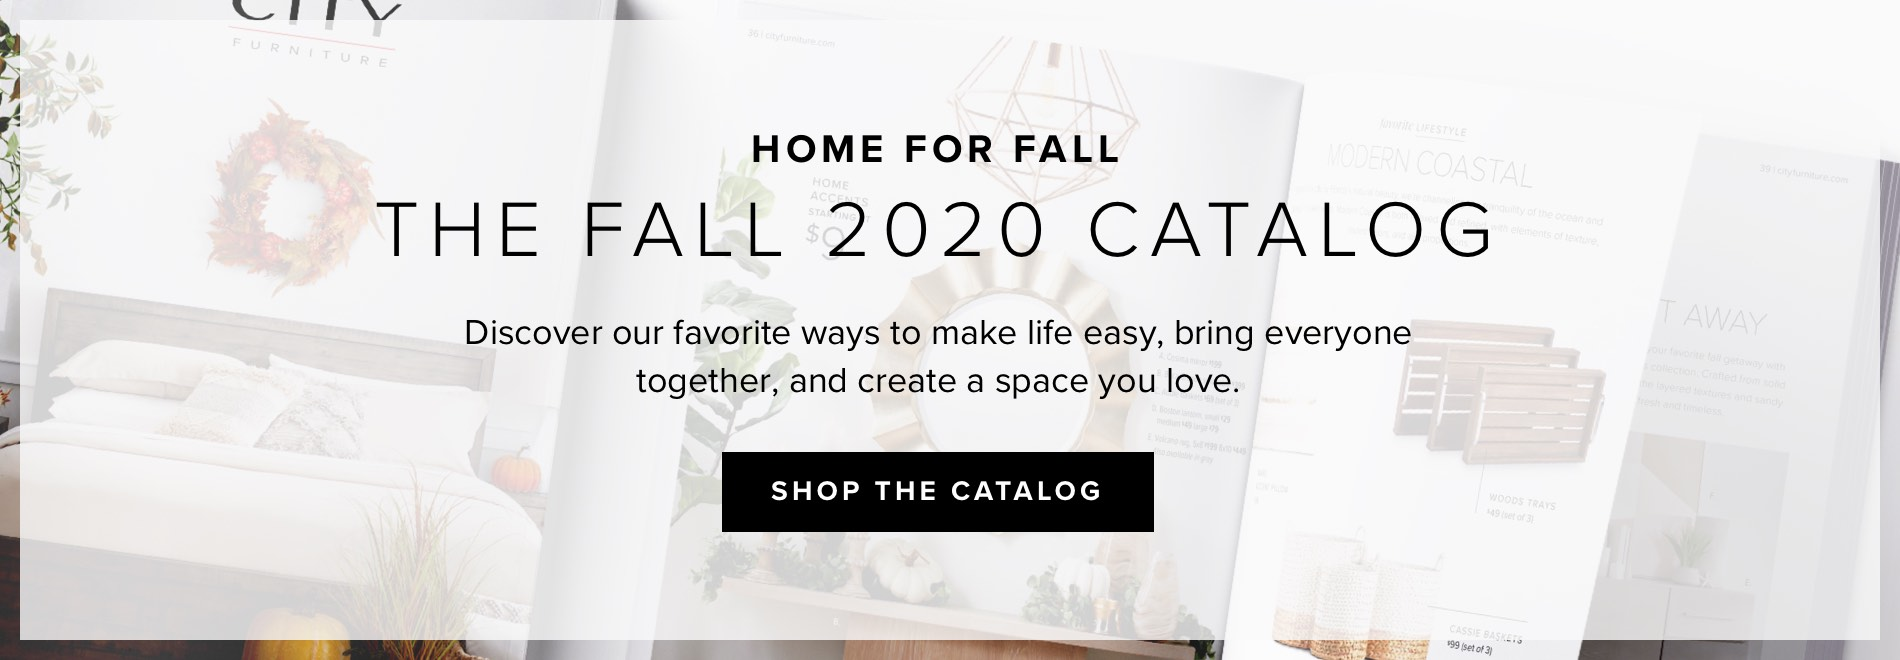 Home for Fall. The Fall 2020 Catalog. We're taking the comforting feeling of fall and bringing it home, with our favorite ways to make life easy, bring us together, and create a space you live. Click to shop the catalog.